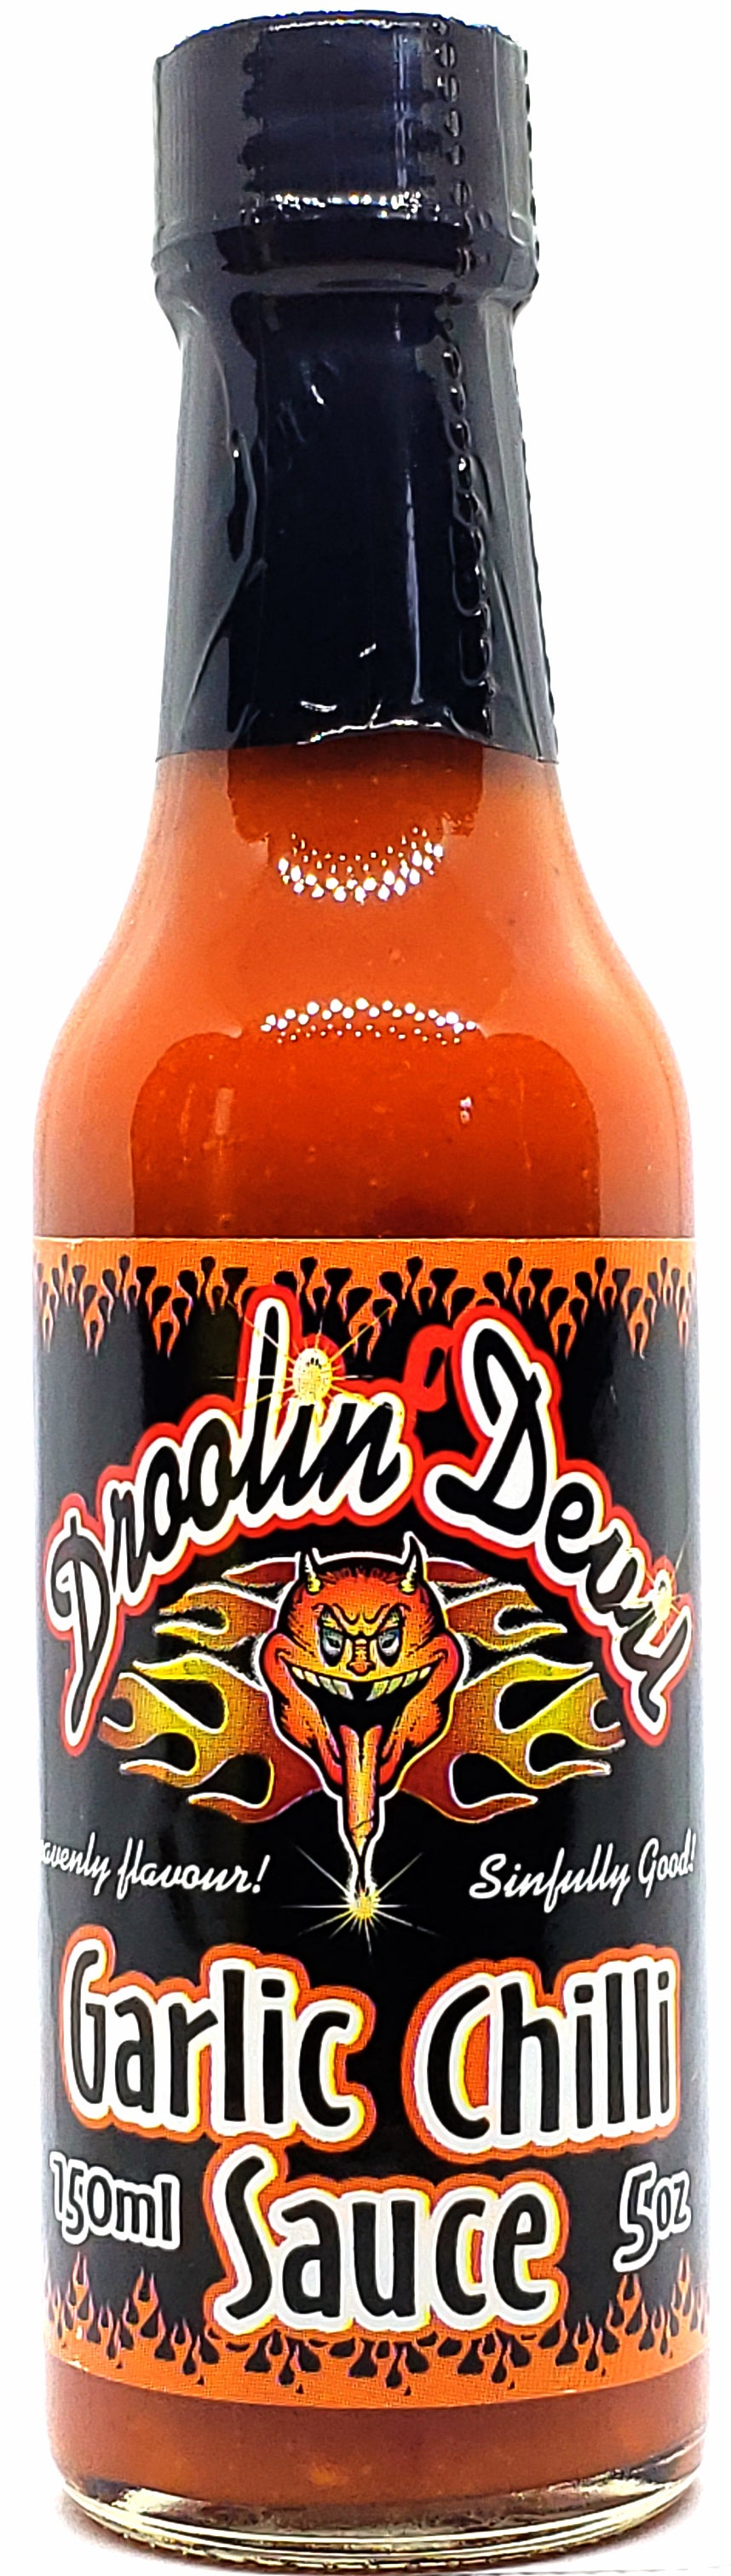 Droolin' Devil Garlic Chili Sauce